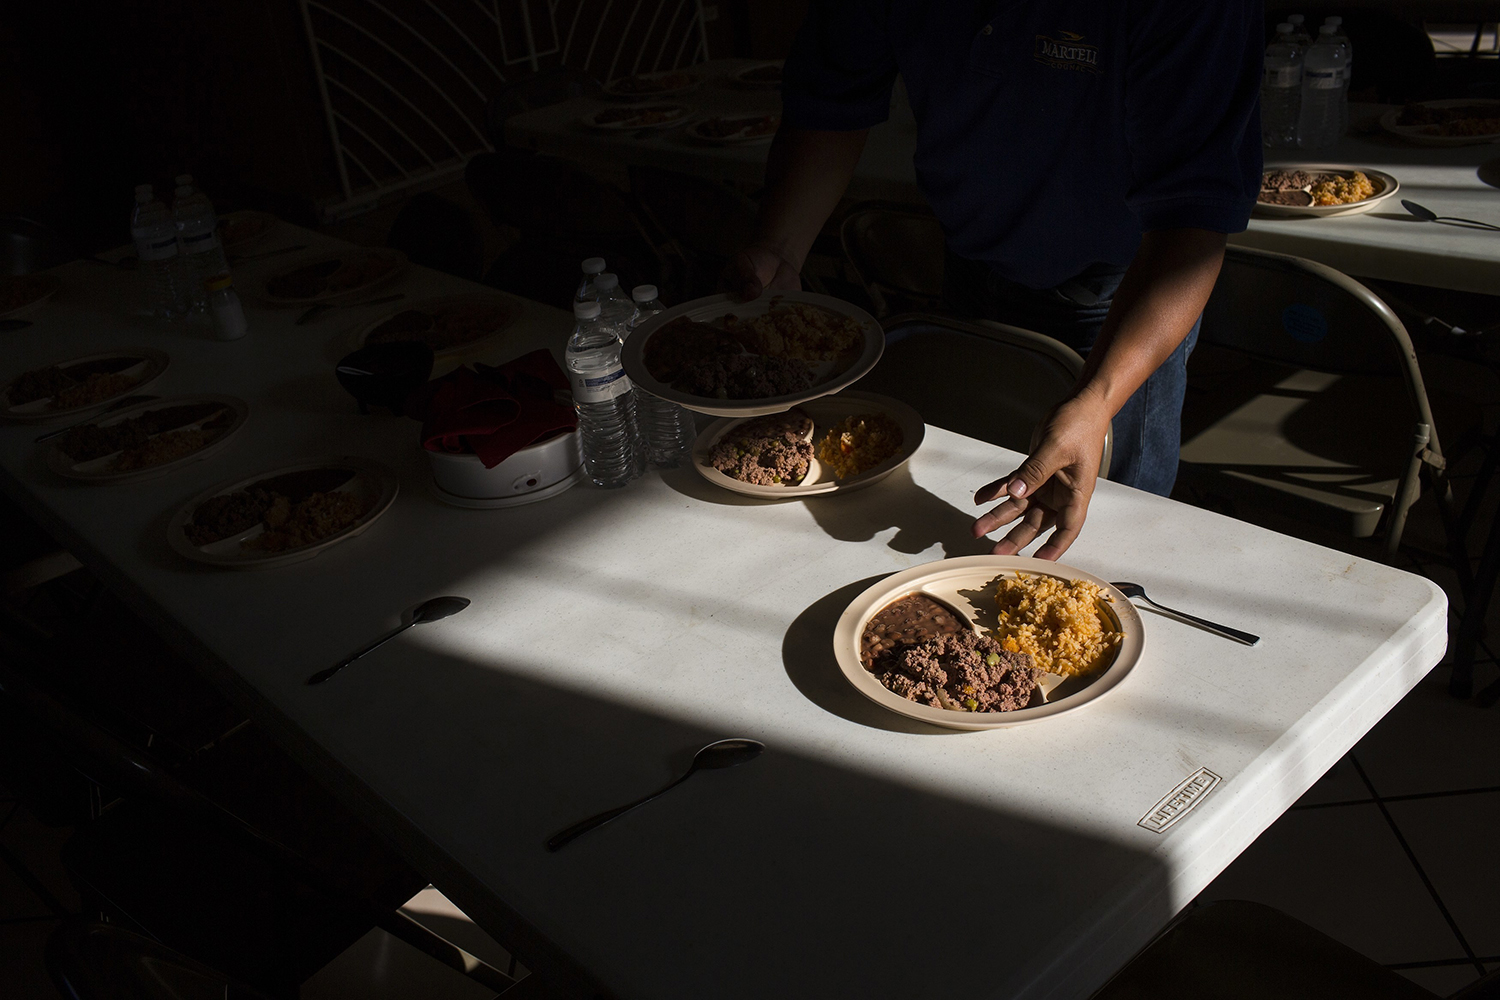 """Migrants have a dinner of rice and beans at the migrant shelter """"Casa del Migrante"""" in Nuevo Laredo, Tamaulipas state, Mexico, Saturday, March 25, 2017, across the border from Laredo, Texas. Some Cubans have been stuck here since then-President Barack Obama on Jan. 12 ended the so-called """"wet foot, dry foot"""" policy that had given Cubans a privileged path to the U.S. Until then, nearly any Cubans reaching U.S. soil had the right to stay, but now they are treated like migrants from other nations, facing a much tougher barrier. (AP Photo/Rodrigo Abd)"""